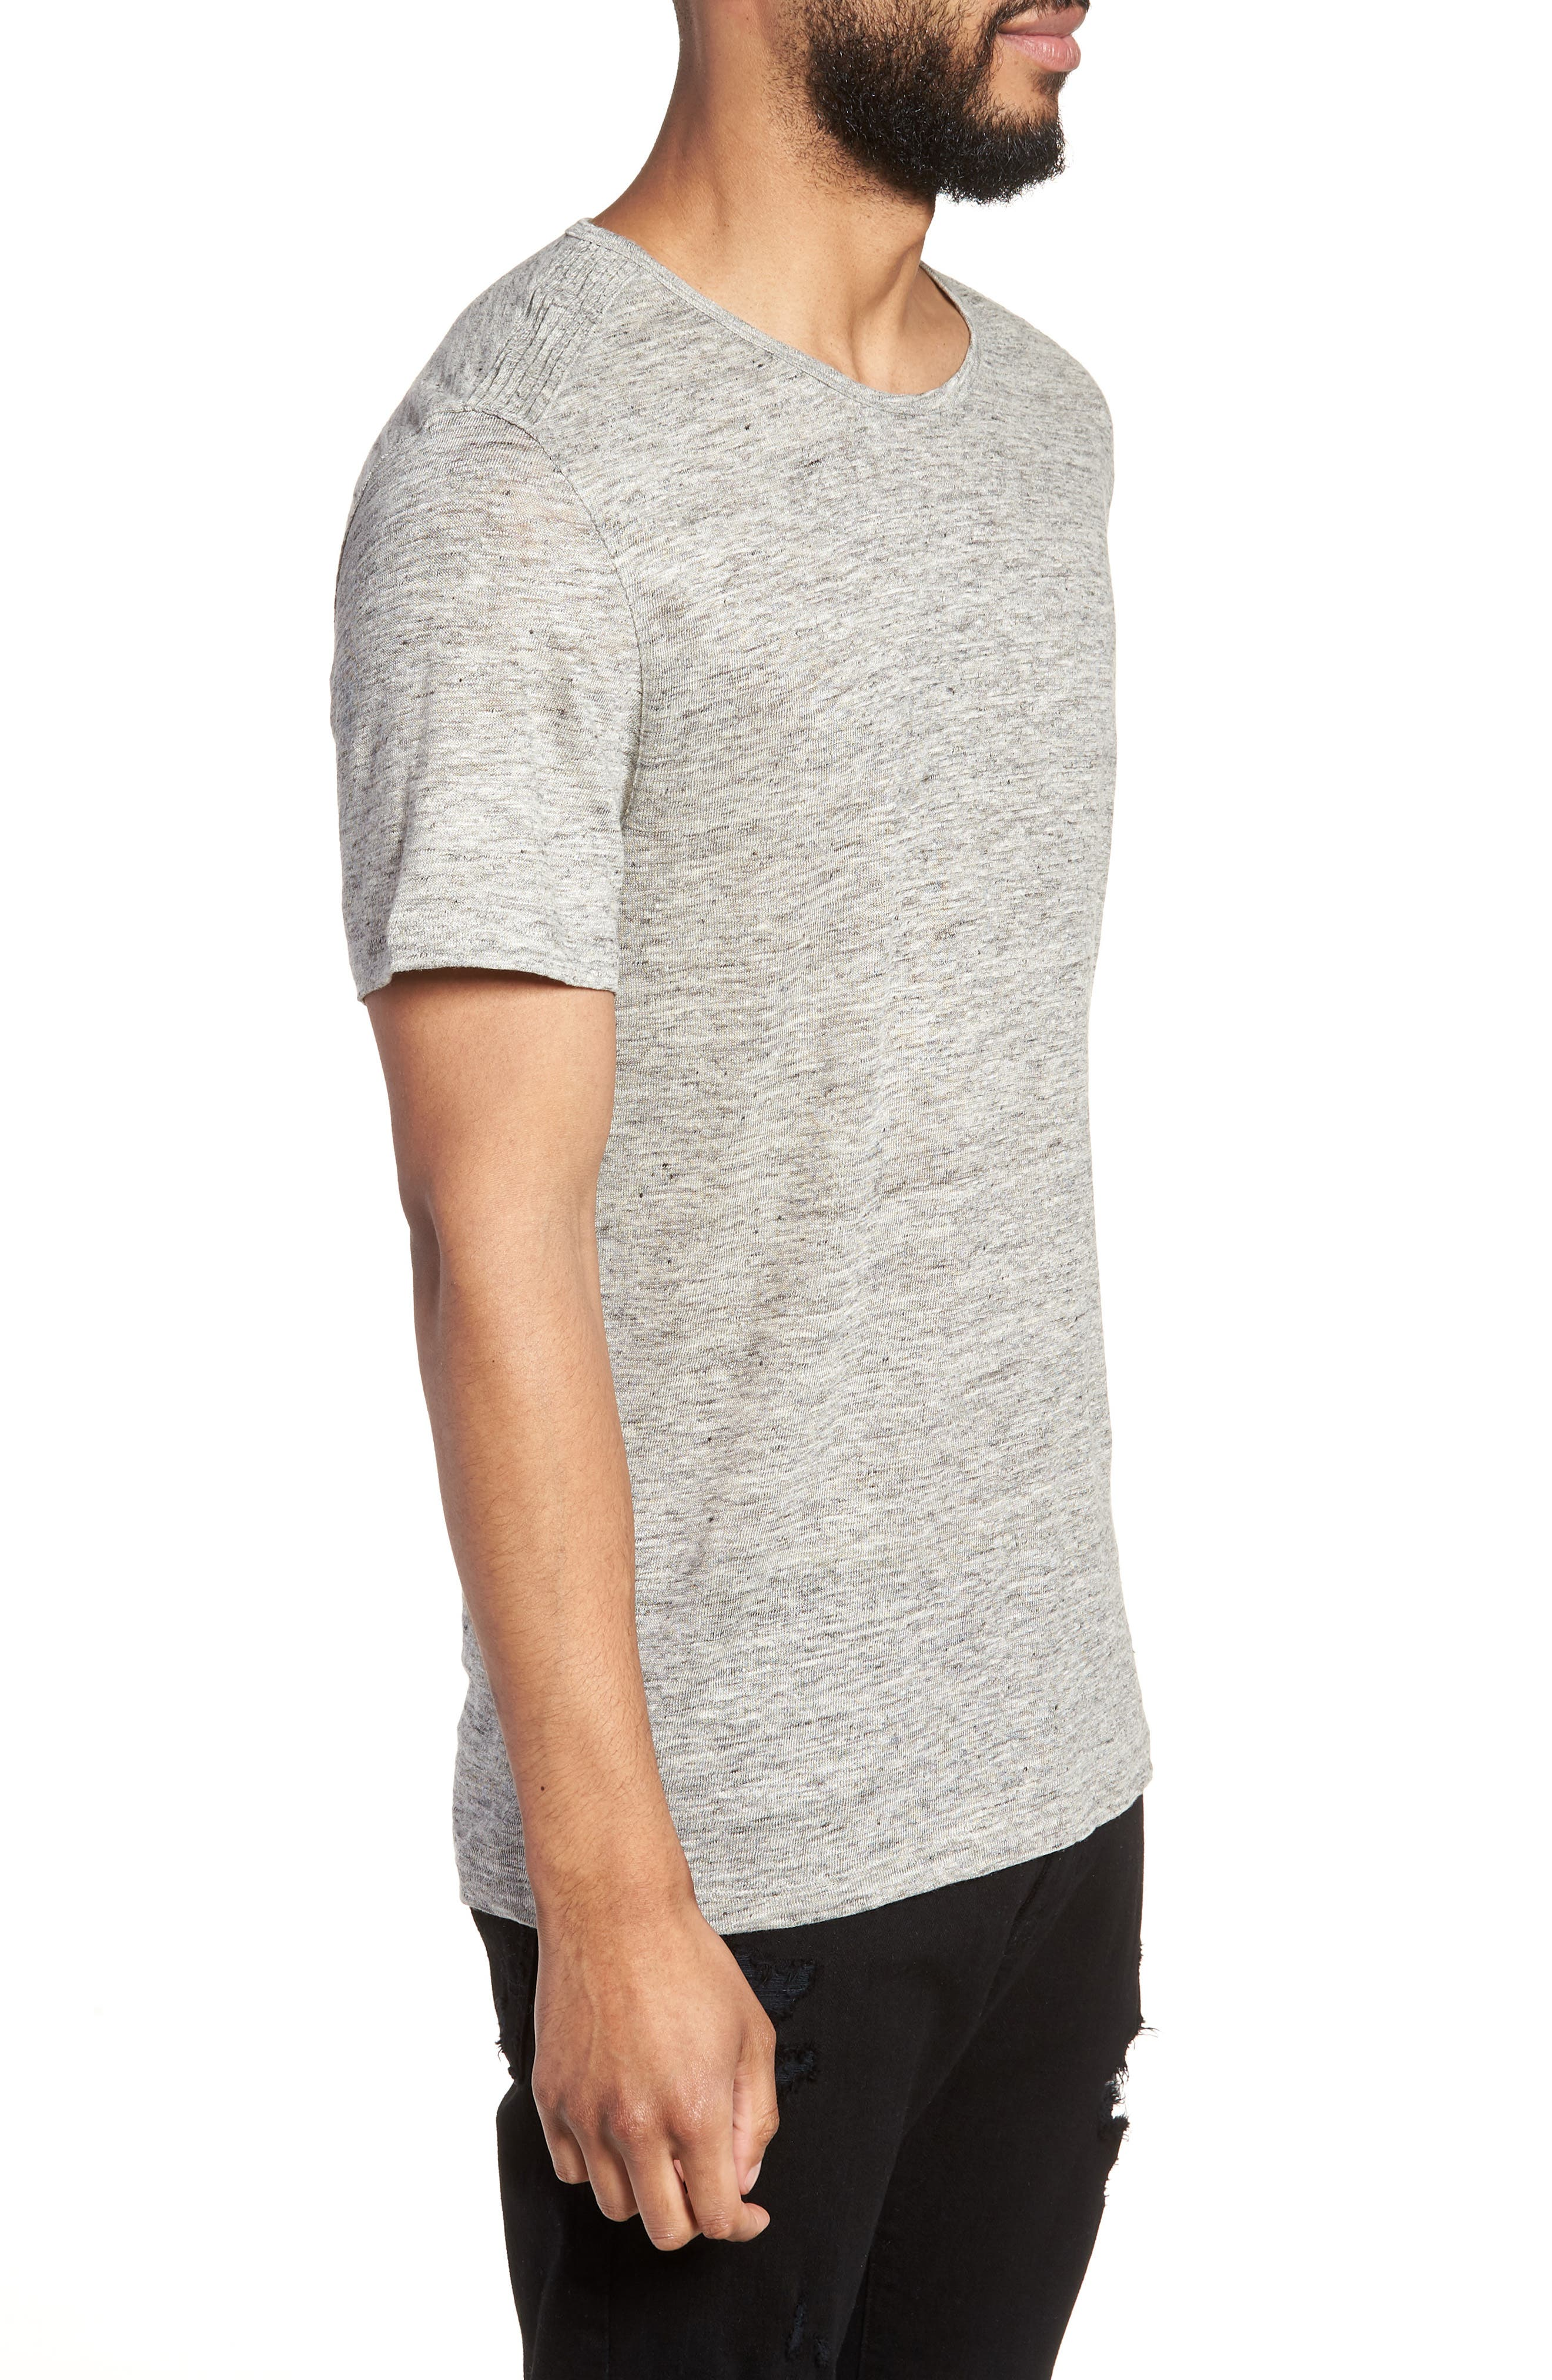 John Varvatos x Nick Jonas Linen T-Shirt,                             Alternate thumbnail 5, color,                             Light Grey Heather